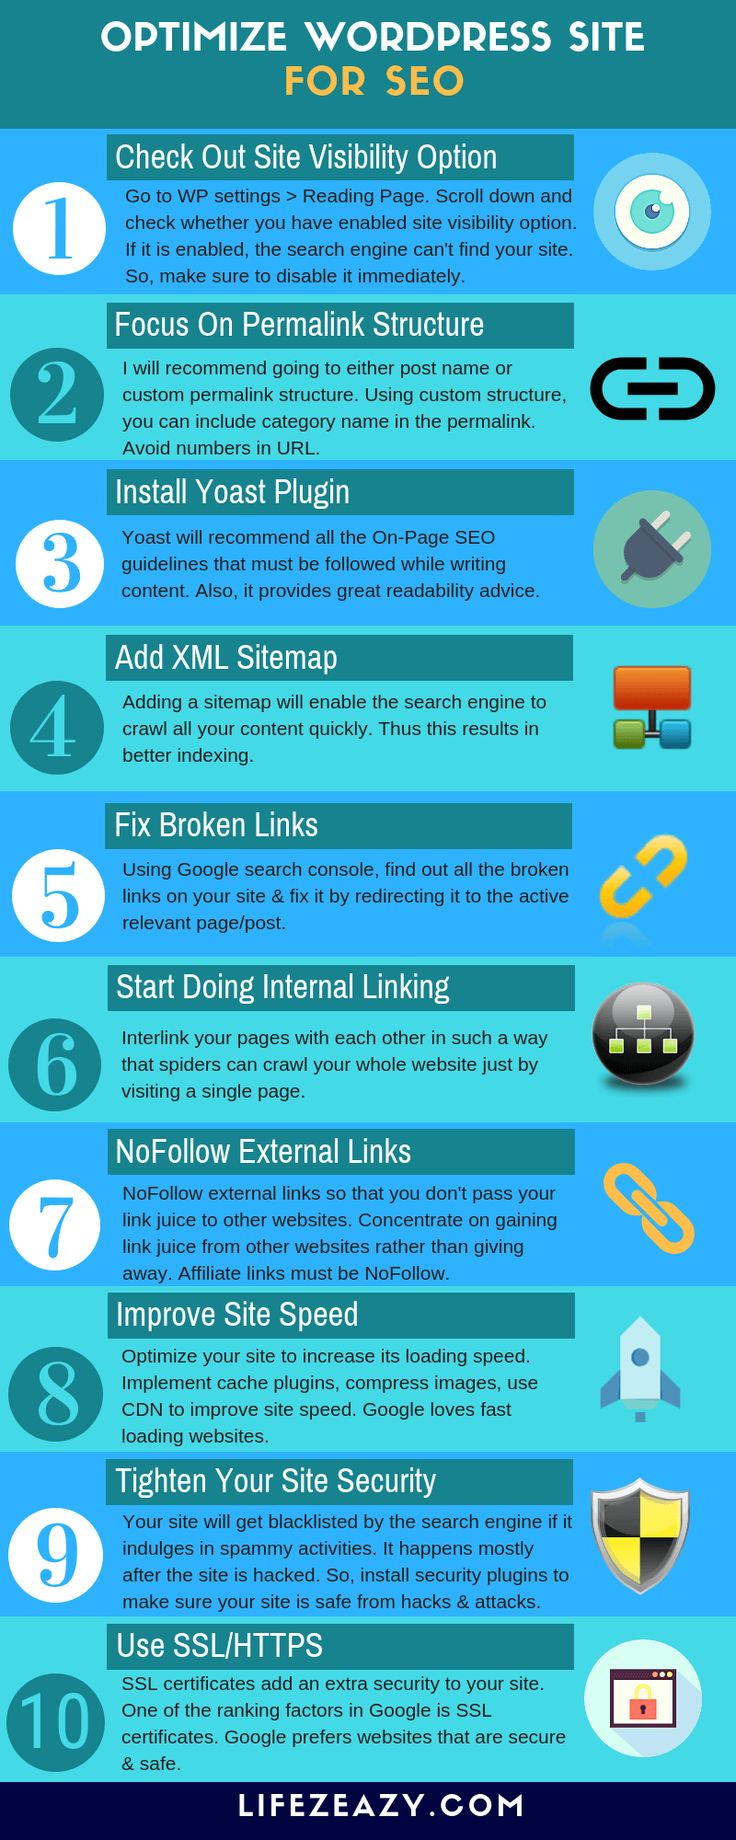 If you want to optimize WordPress site for SEO, check out these 10 steps to make…